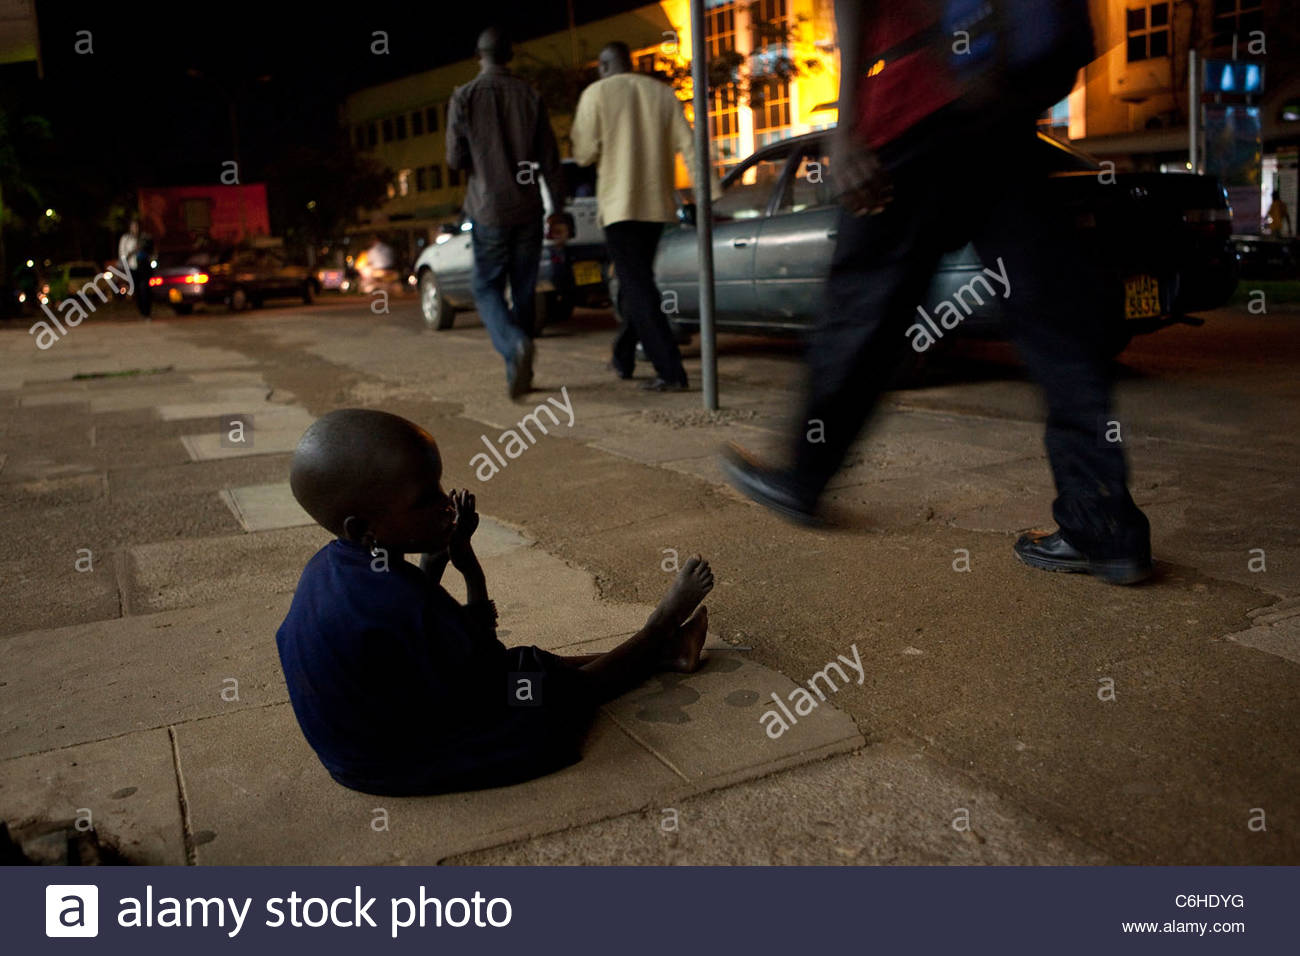 A young child begging on the pavement as pedestrians walk by - Stock Image